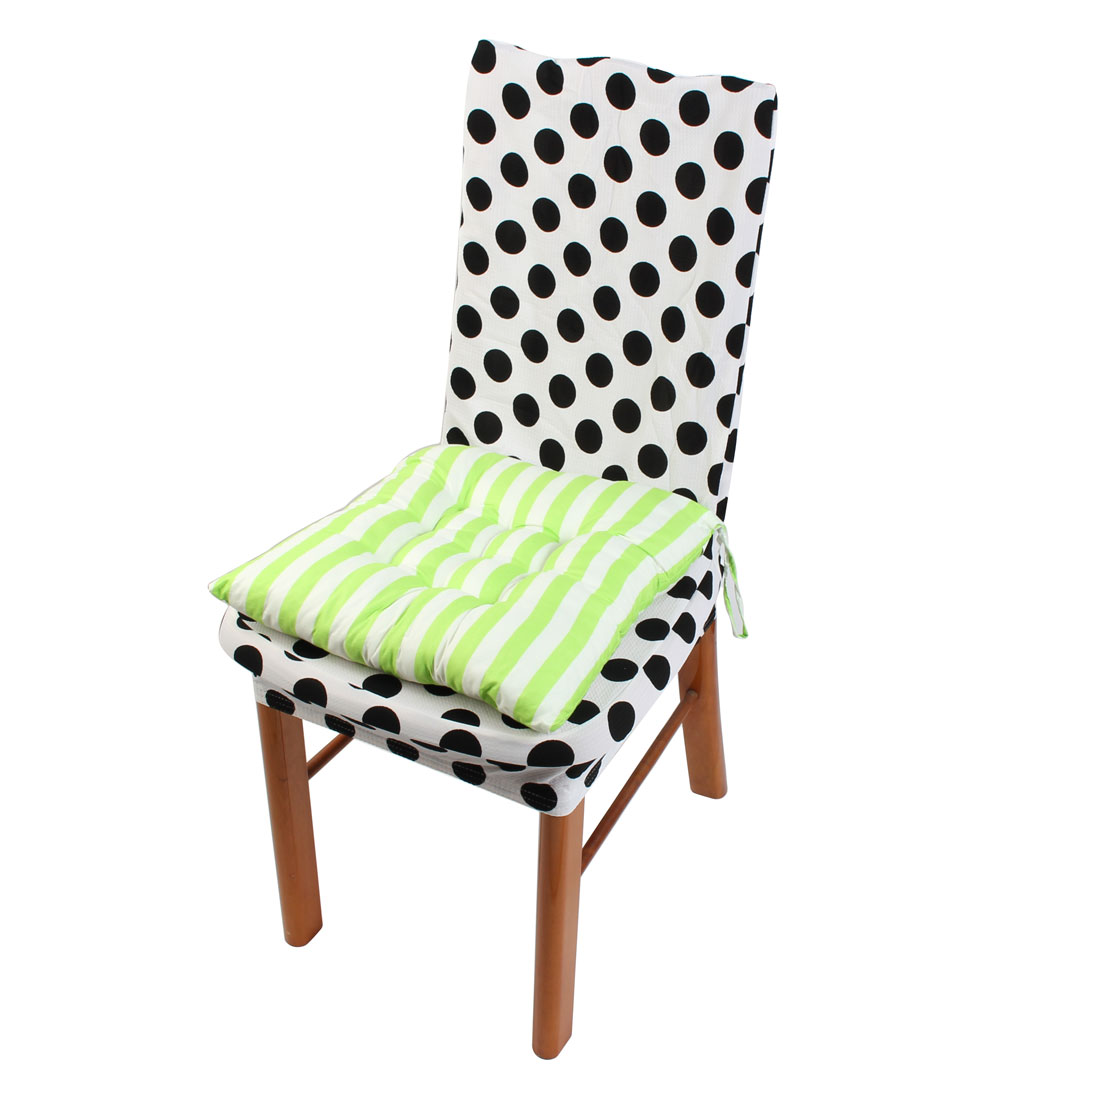 House Cotton Blends Square Stripe Seat Cushion Green and White 40cm x 40cm